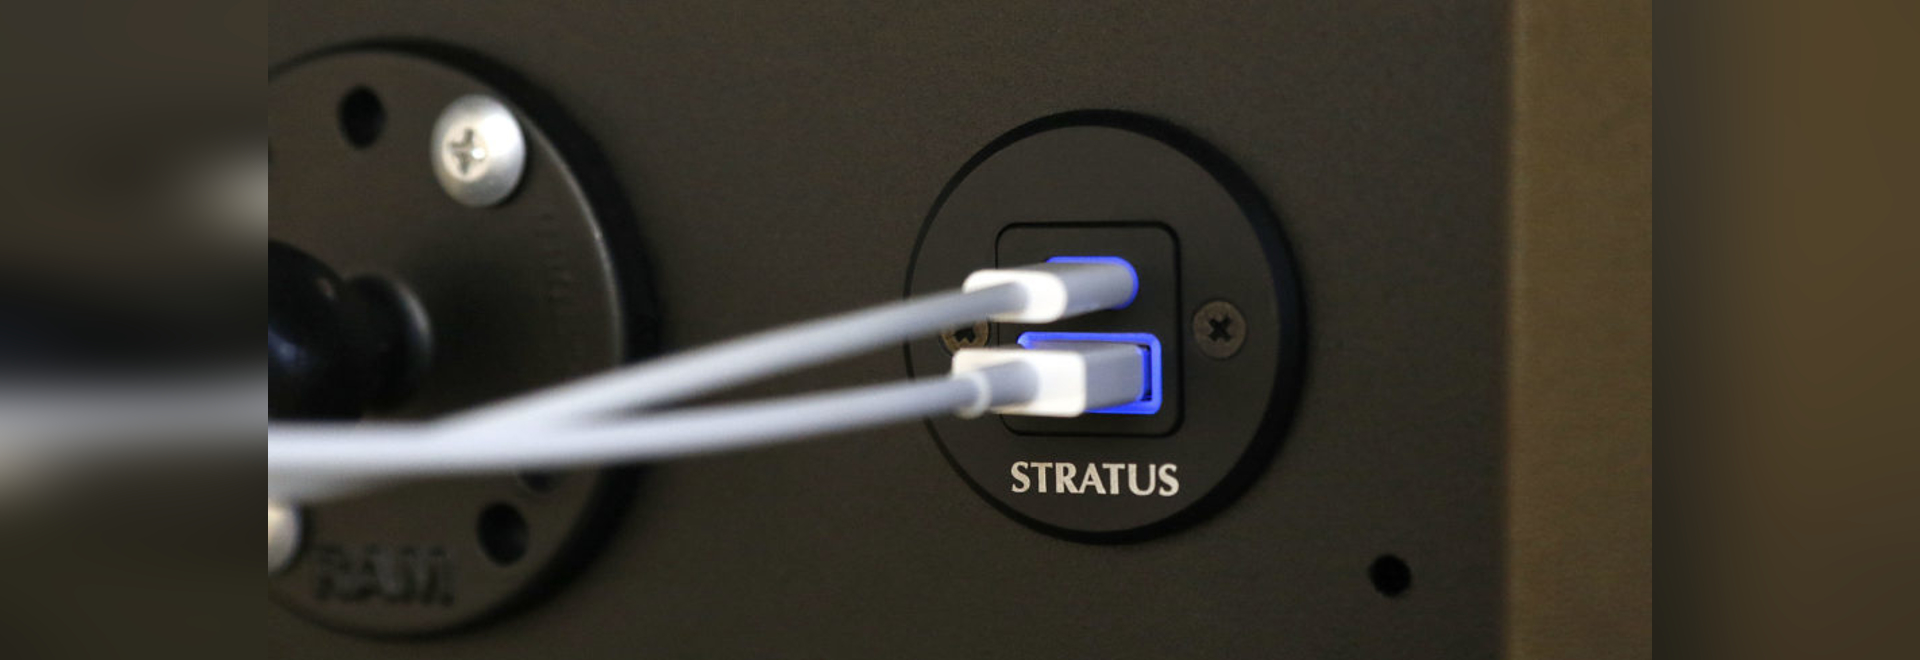 The update to the Stratus Power provides 20 percent more power to recharge smartphones and other devices while in use during flight.